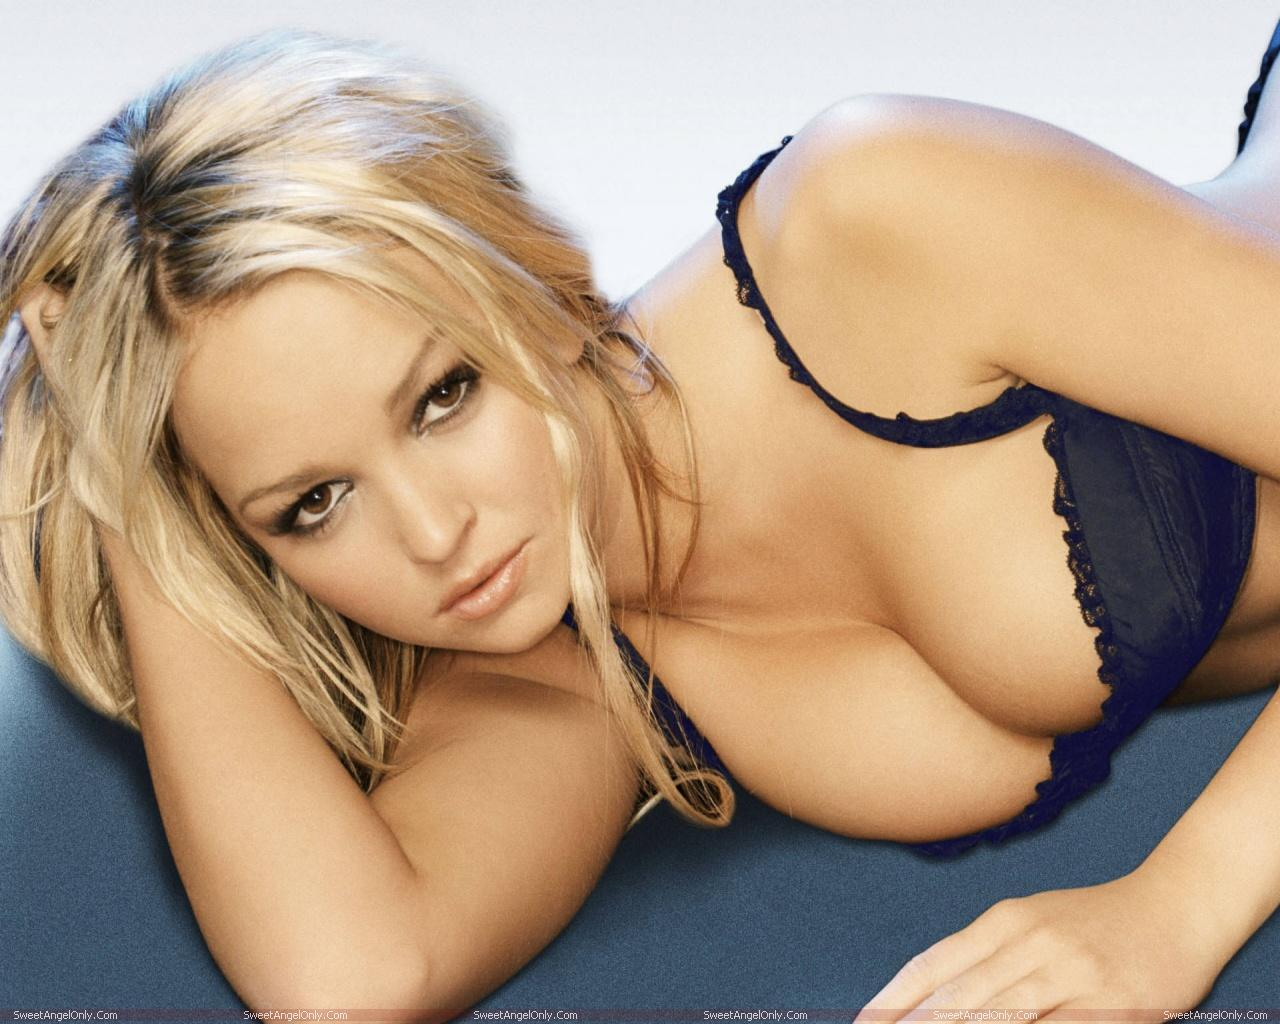 http://1.bp.blogspot.com/-D2ZBnsdu2Pc/TWjaMIWuG9I/AAAAAAAAEy0/7eiy3227_gw/s1600/actress_jennifer_ellison_super_wallpaper_08.jpg